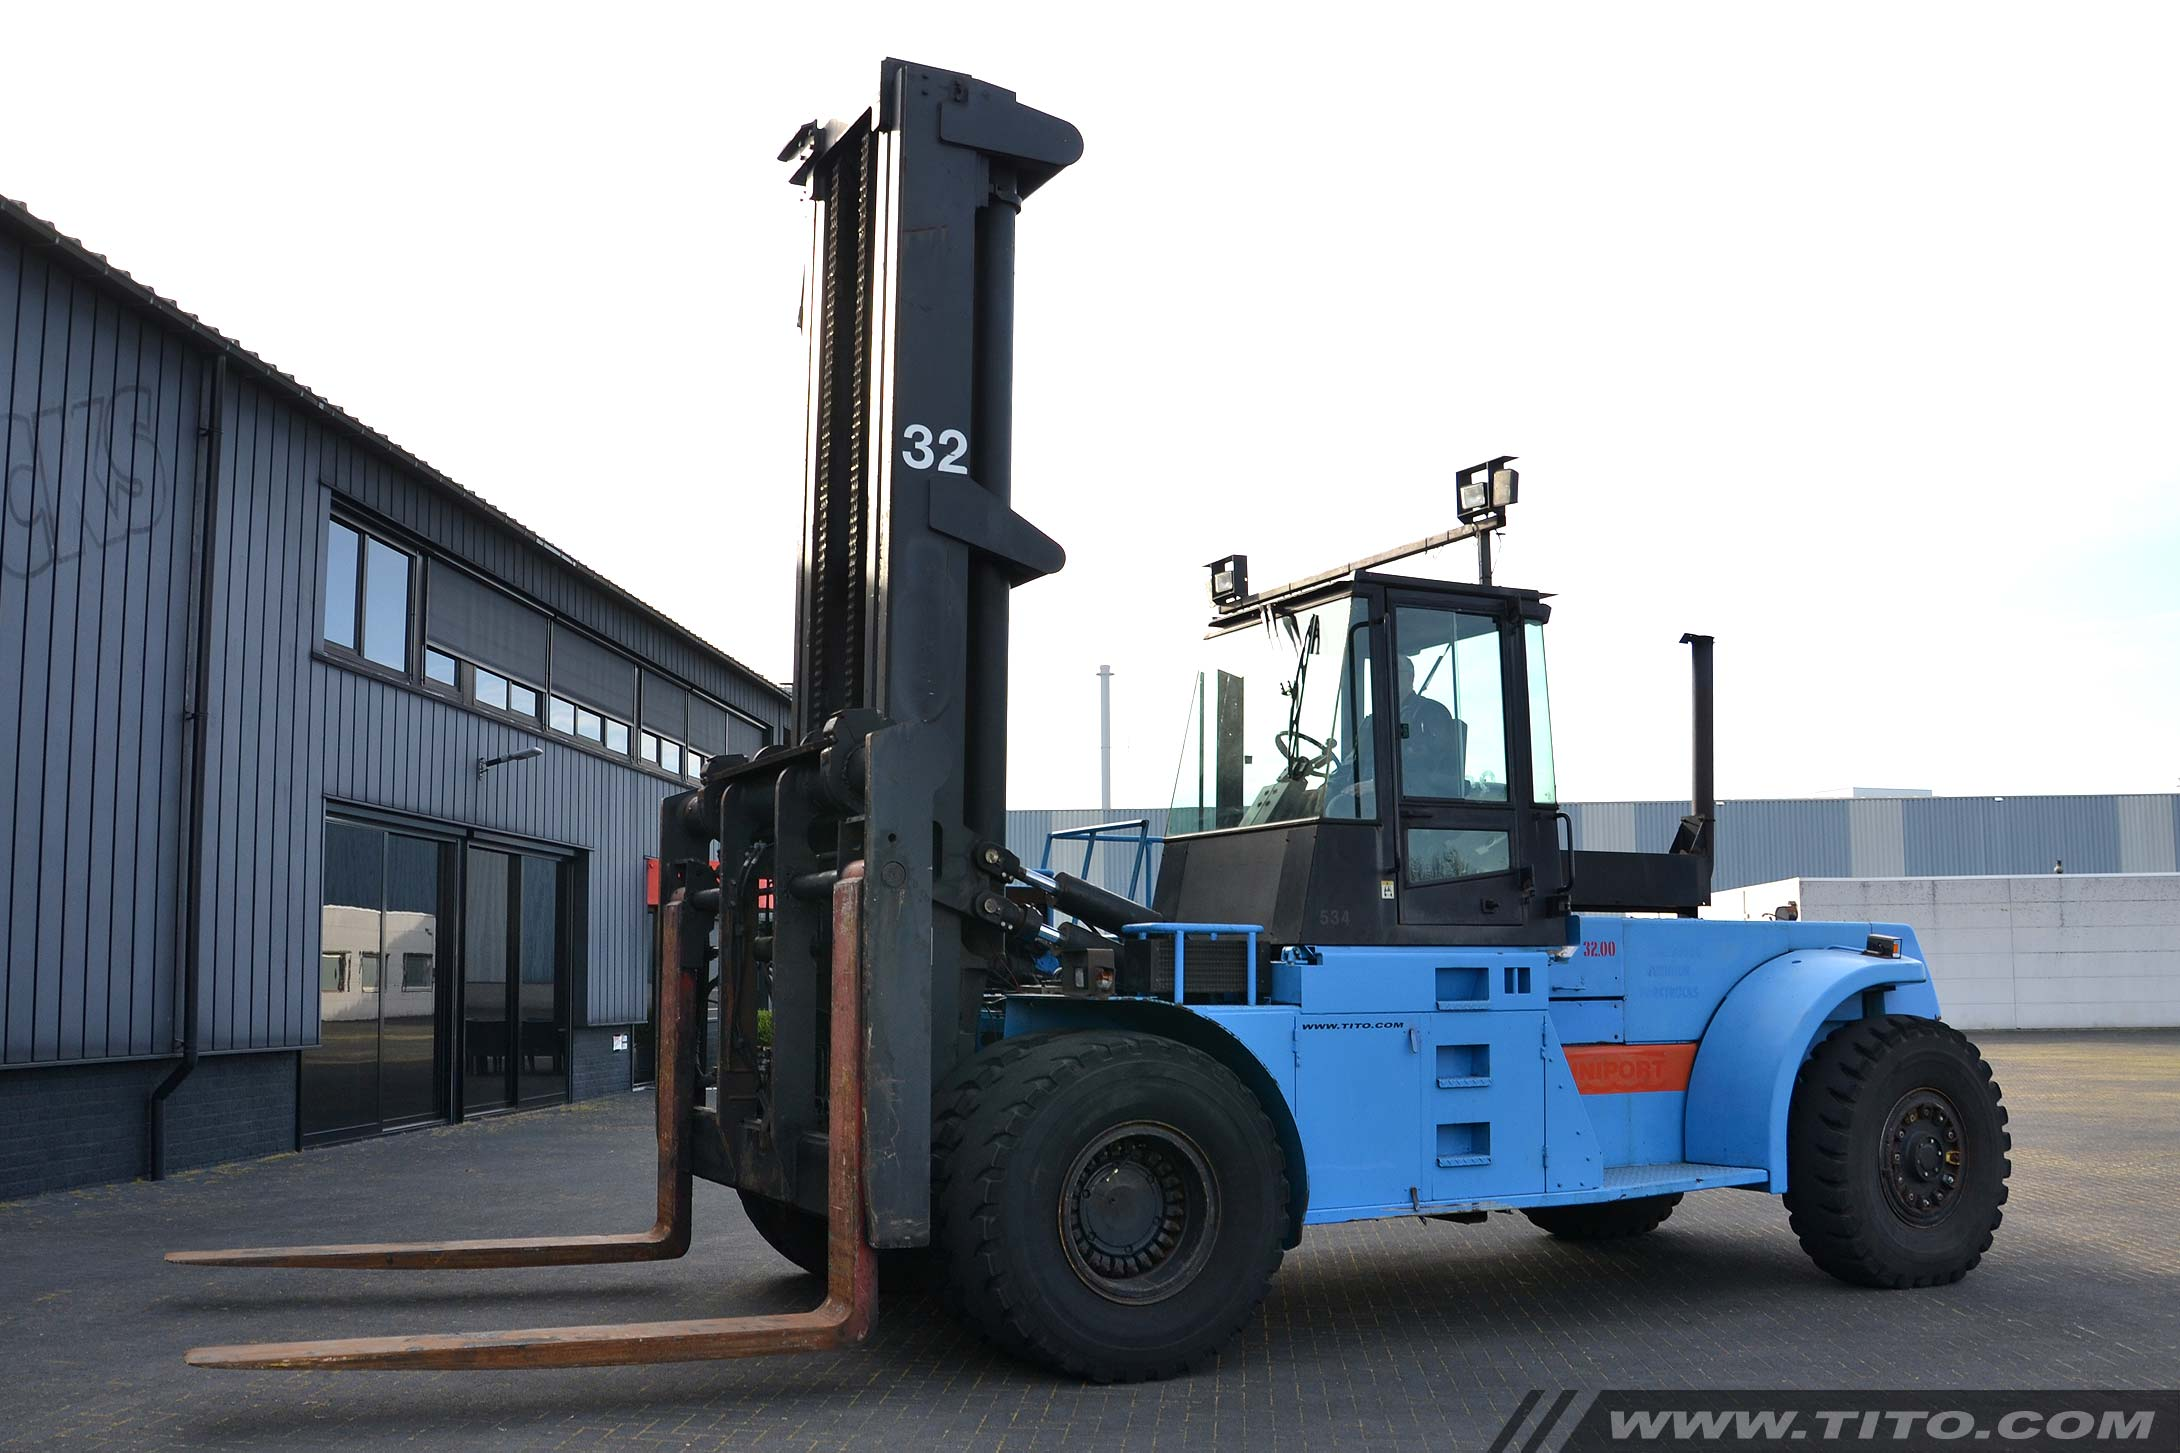 used 32 ton Hyster forklift for sale